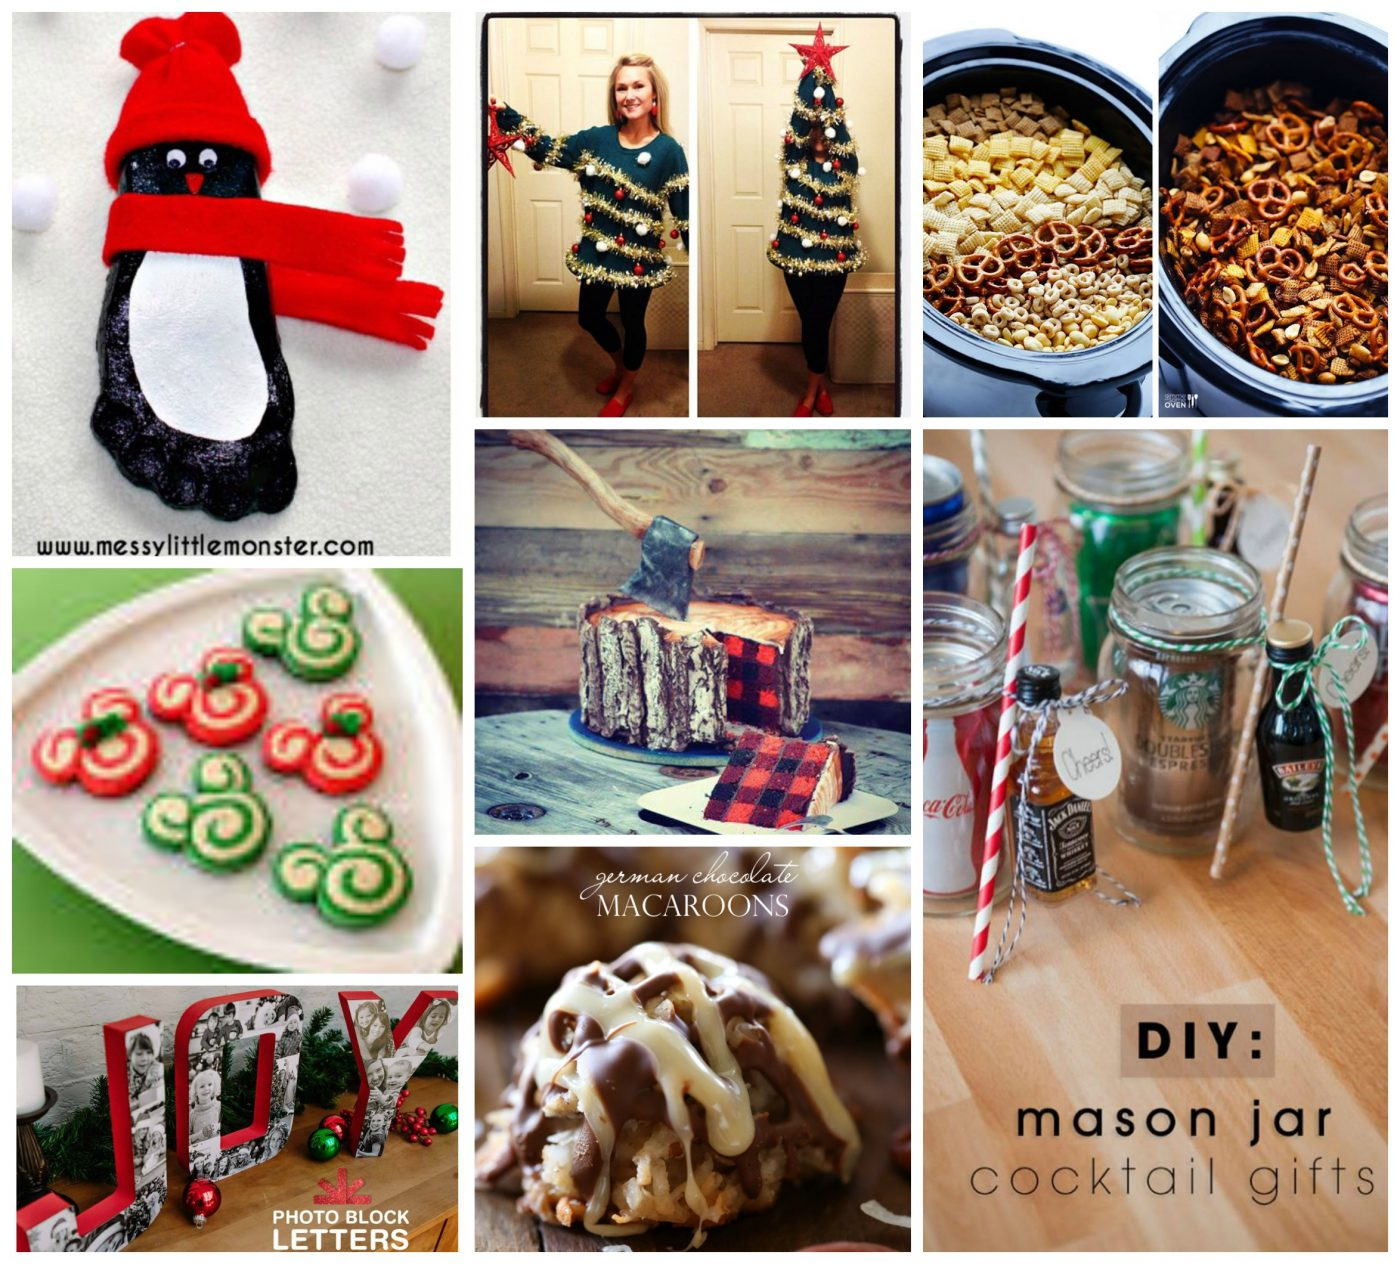 Kitchen Fun And Crafty Friday Link Party 167: Fun Finds Friday With Christmas Treats, Crafts